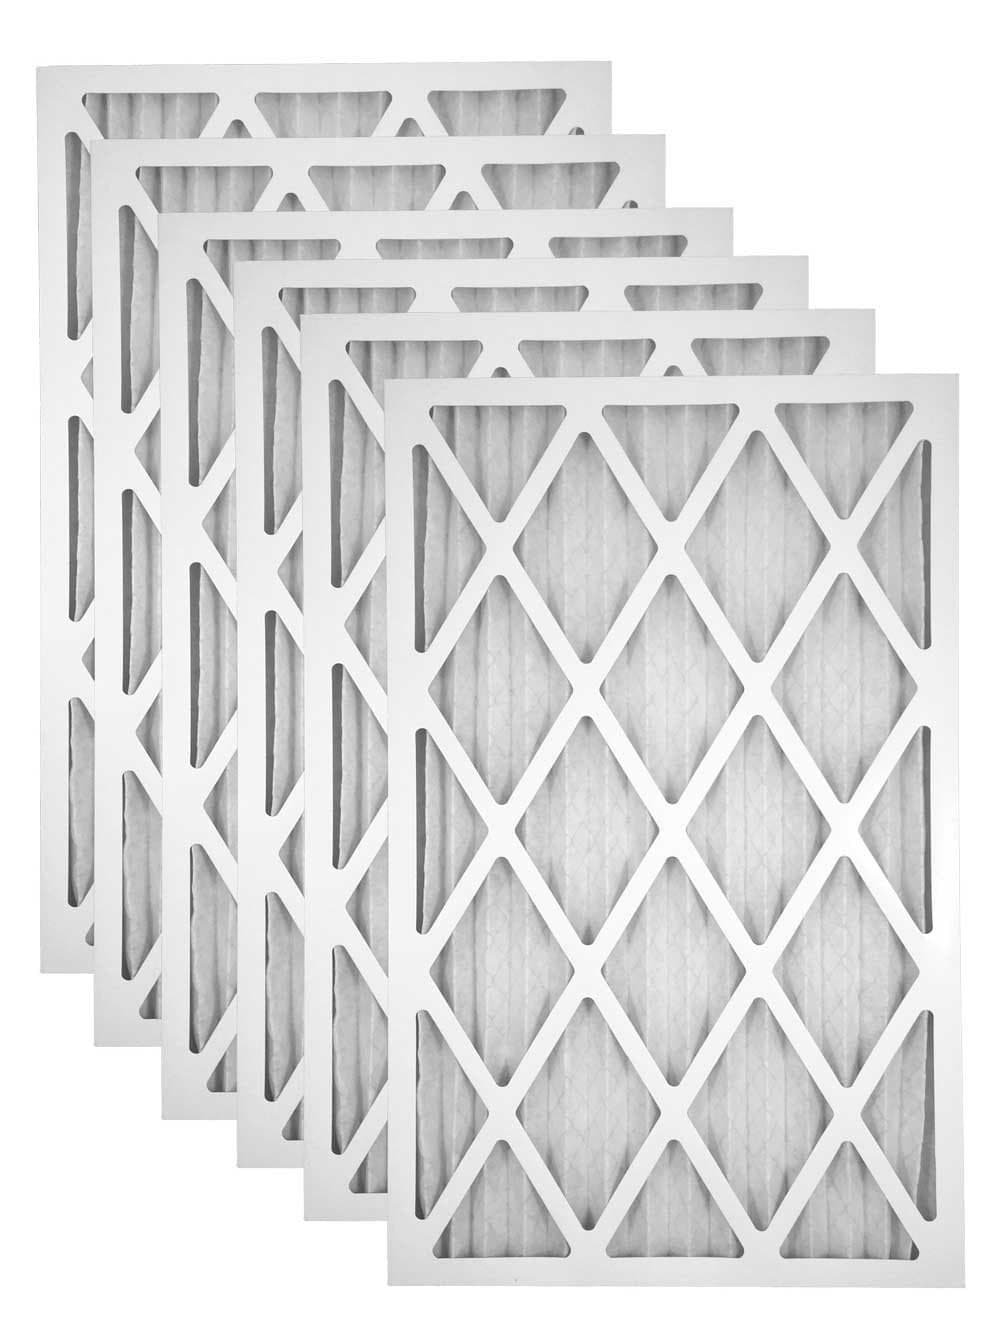 16x24x1 Merv 11 Pleated AC Furnace Filter - Case of 6